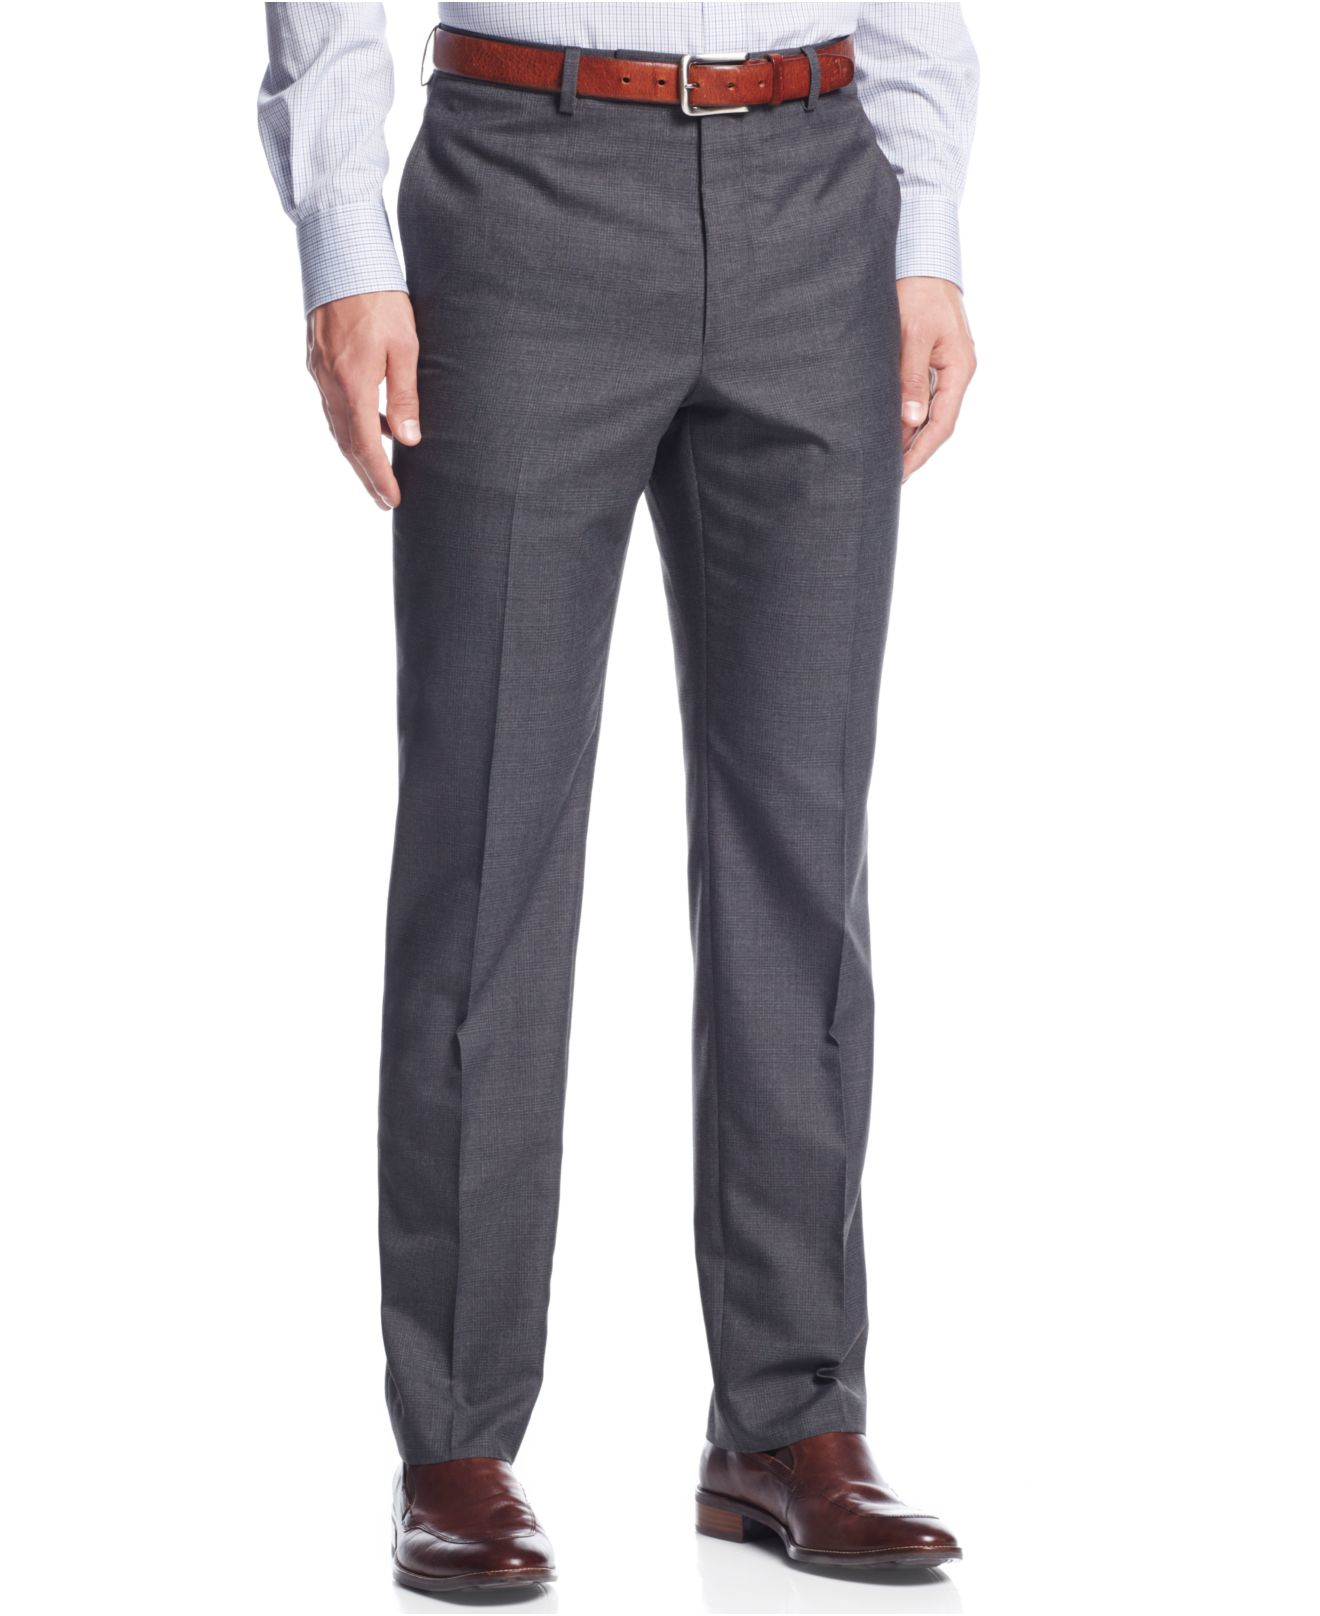 Lyst Calvin Klein Light Grey Plaid Slim Fit Dress Pants